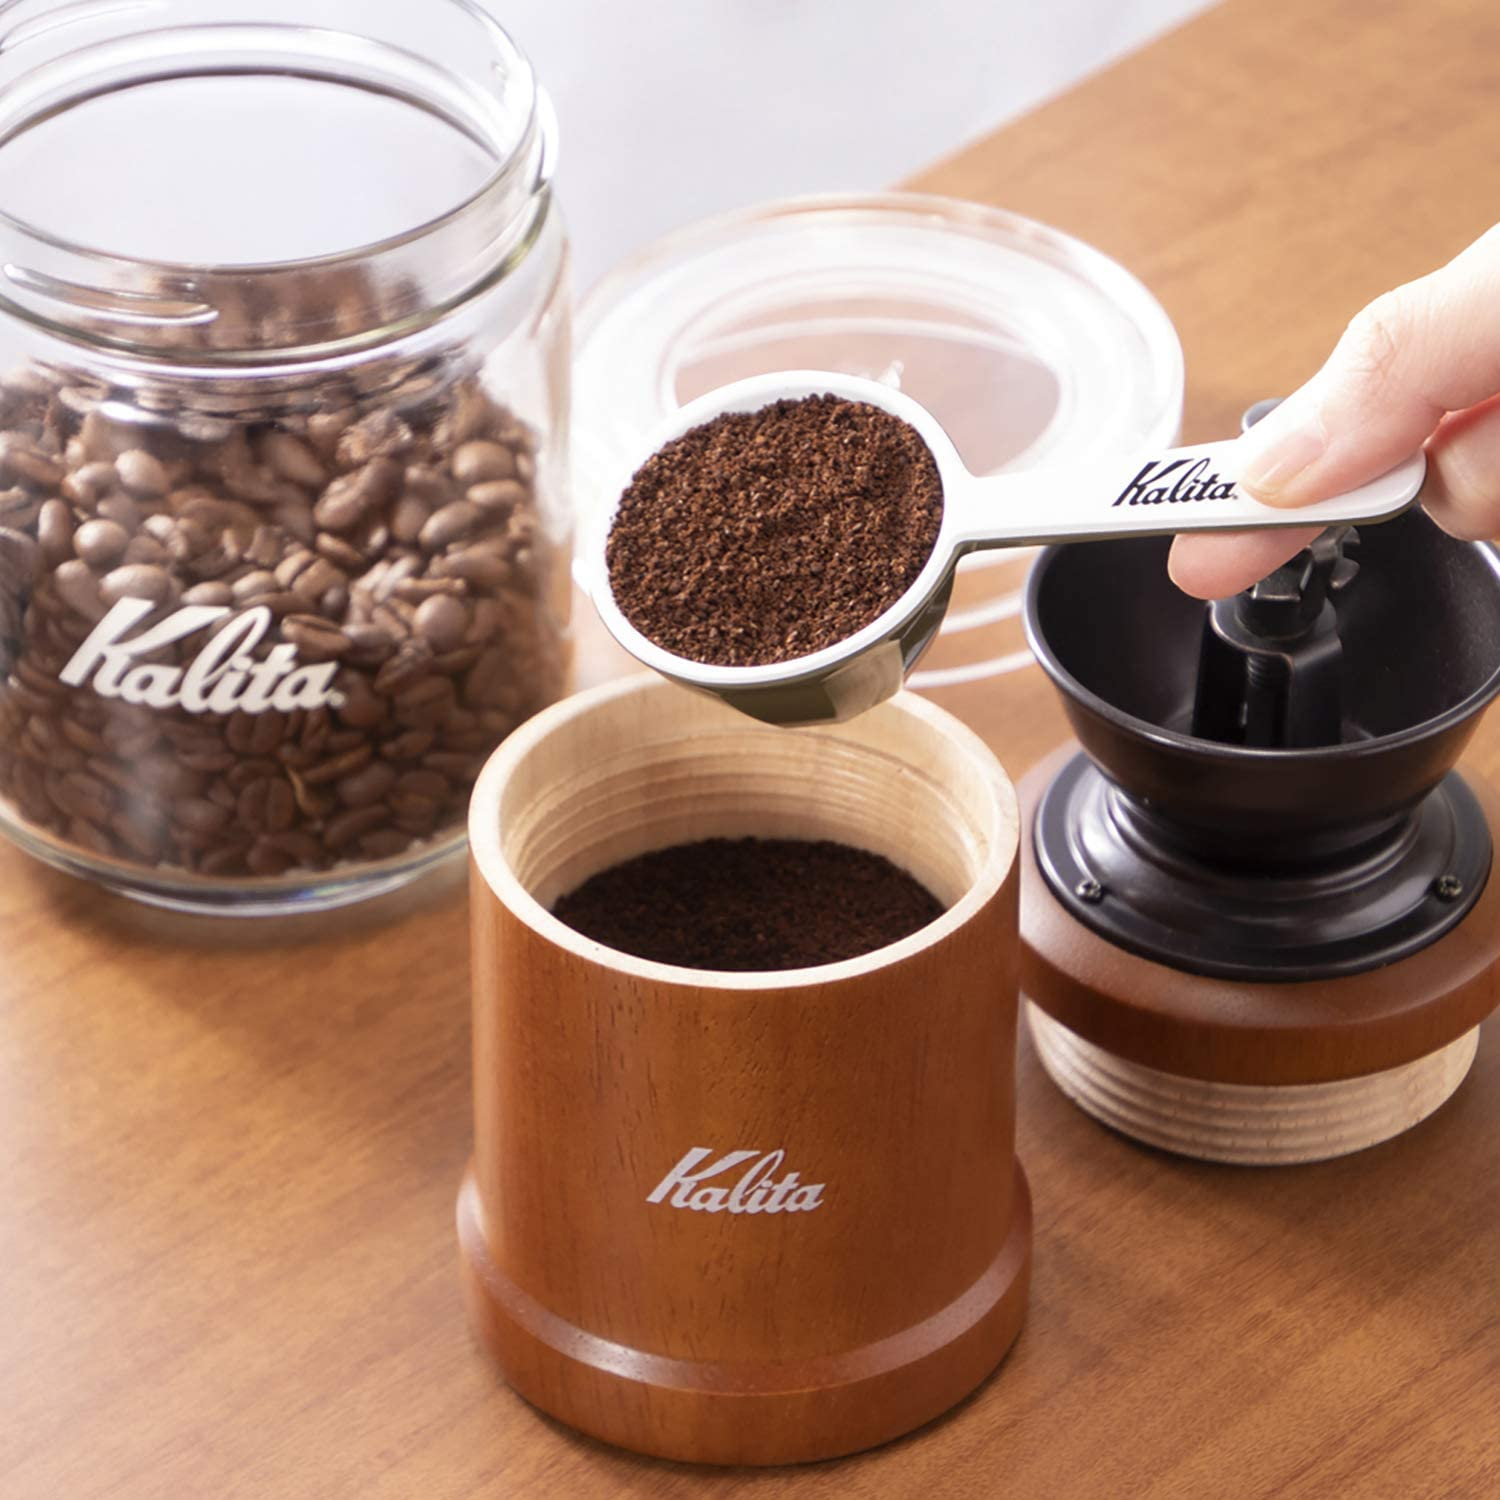 Kalita 咖啡匙 Measuring Spoon丨Coffee Spoon (3色)